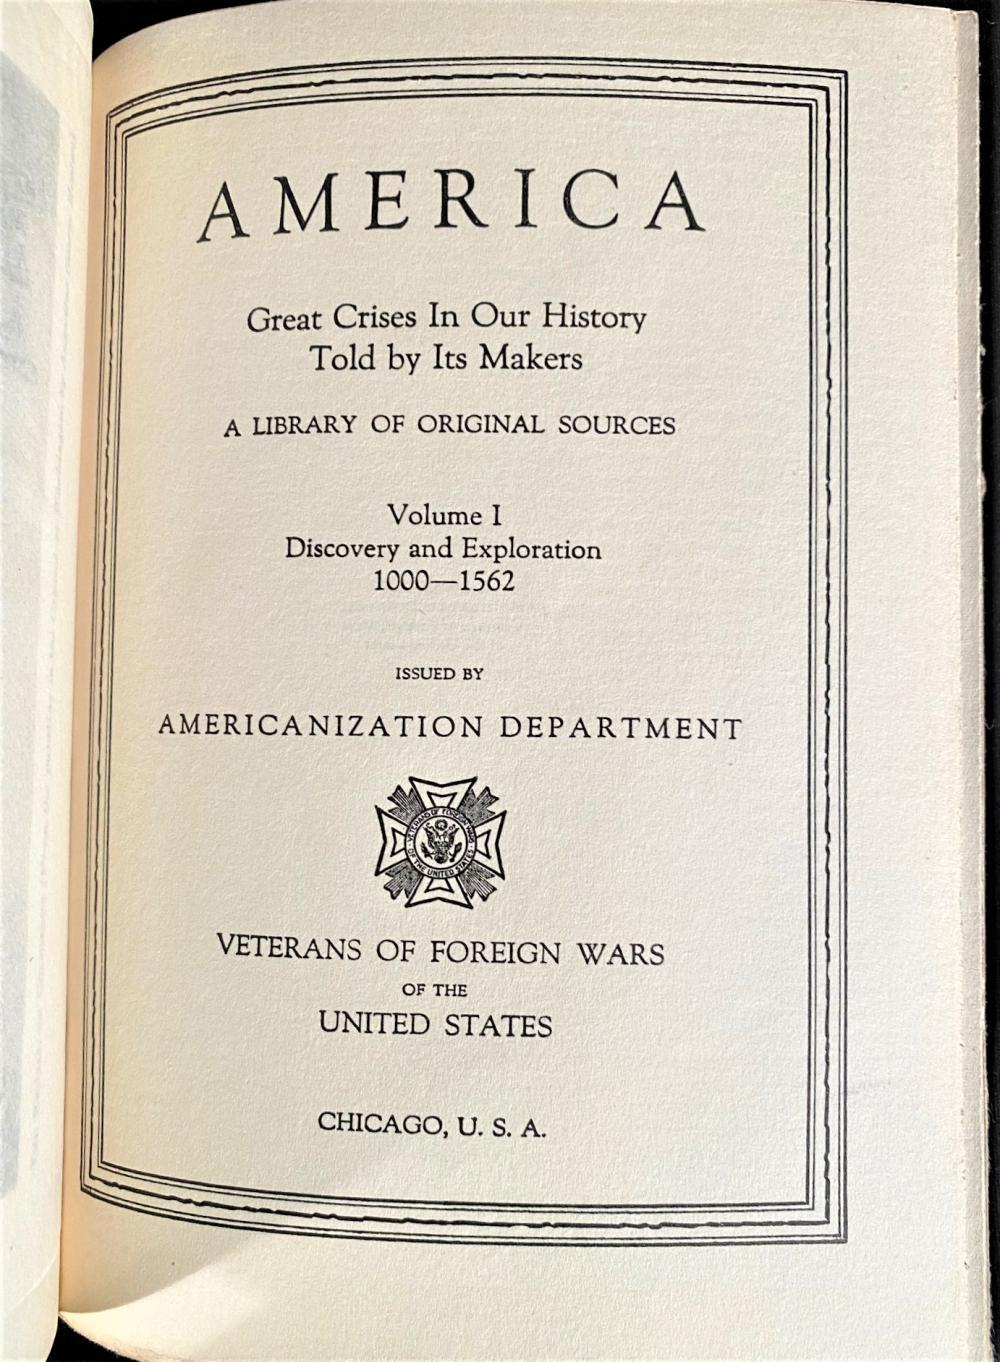 AMERICA: GREAT CRISES IN OUR HISTORY - 12 VOLUMES - 1925